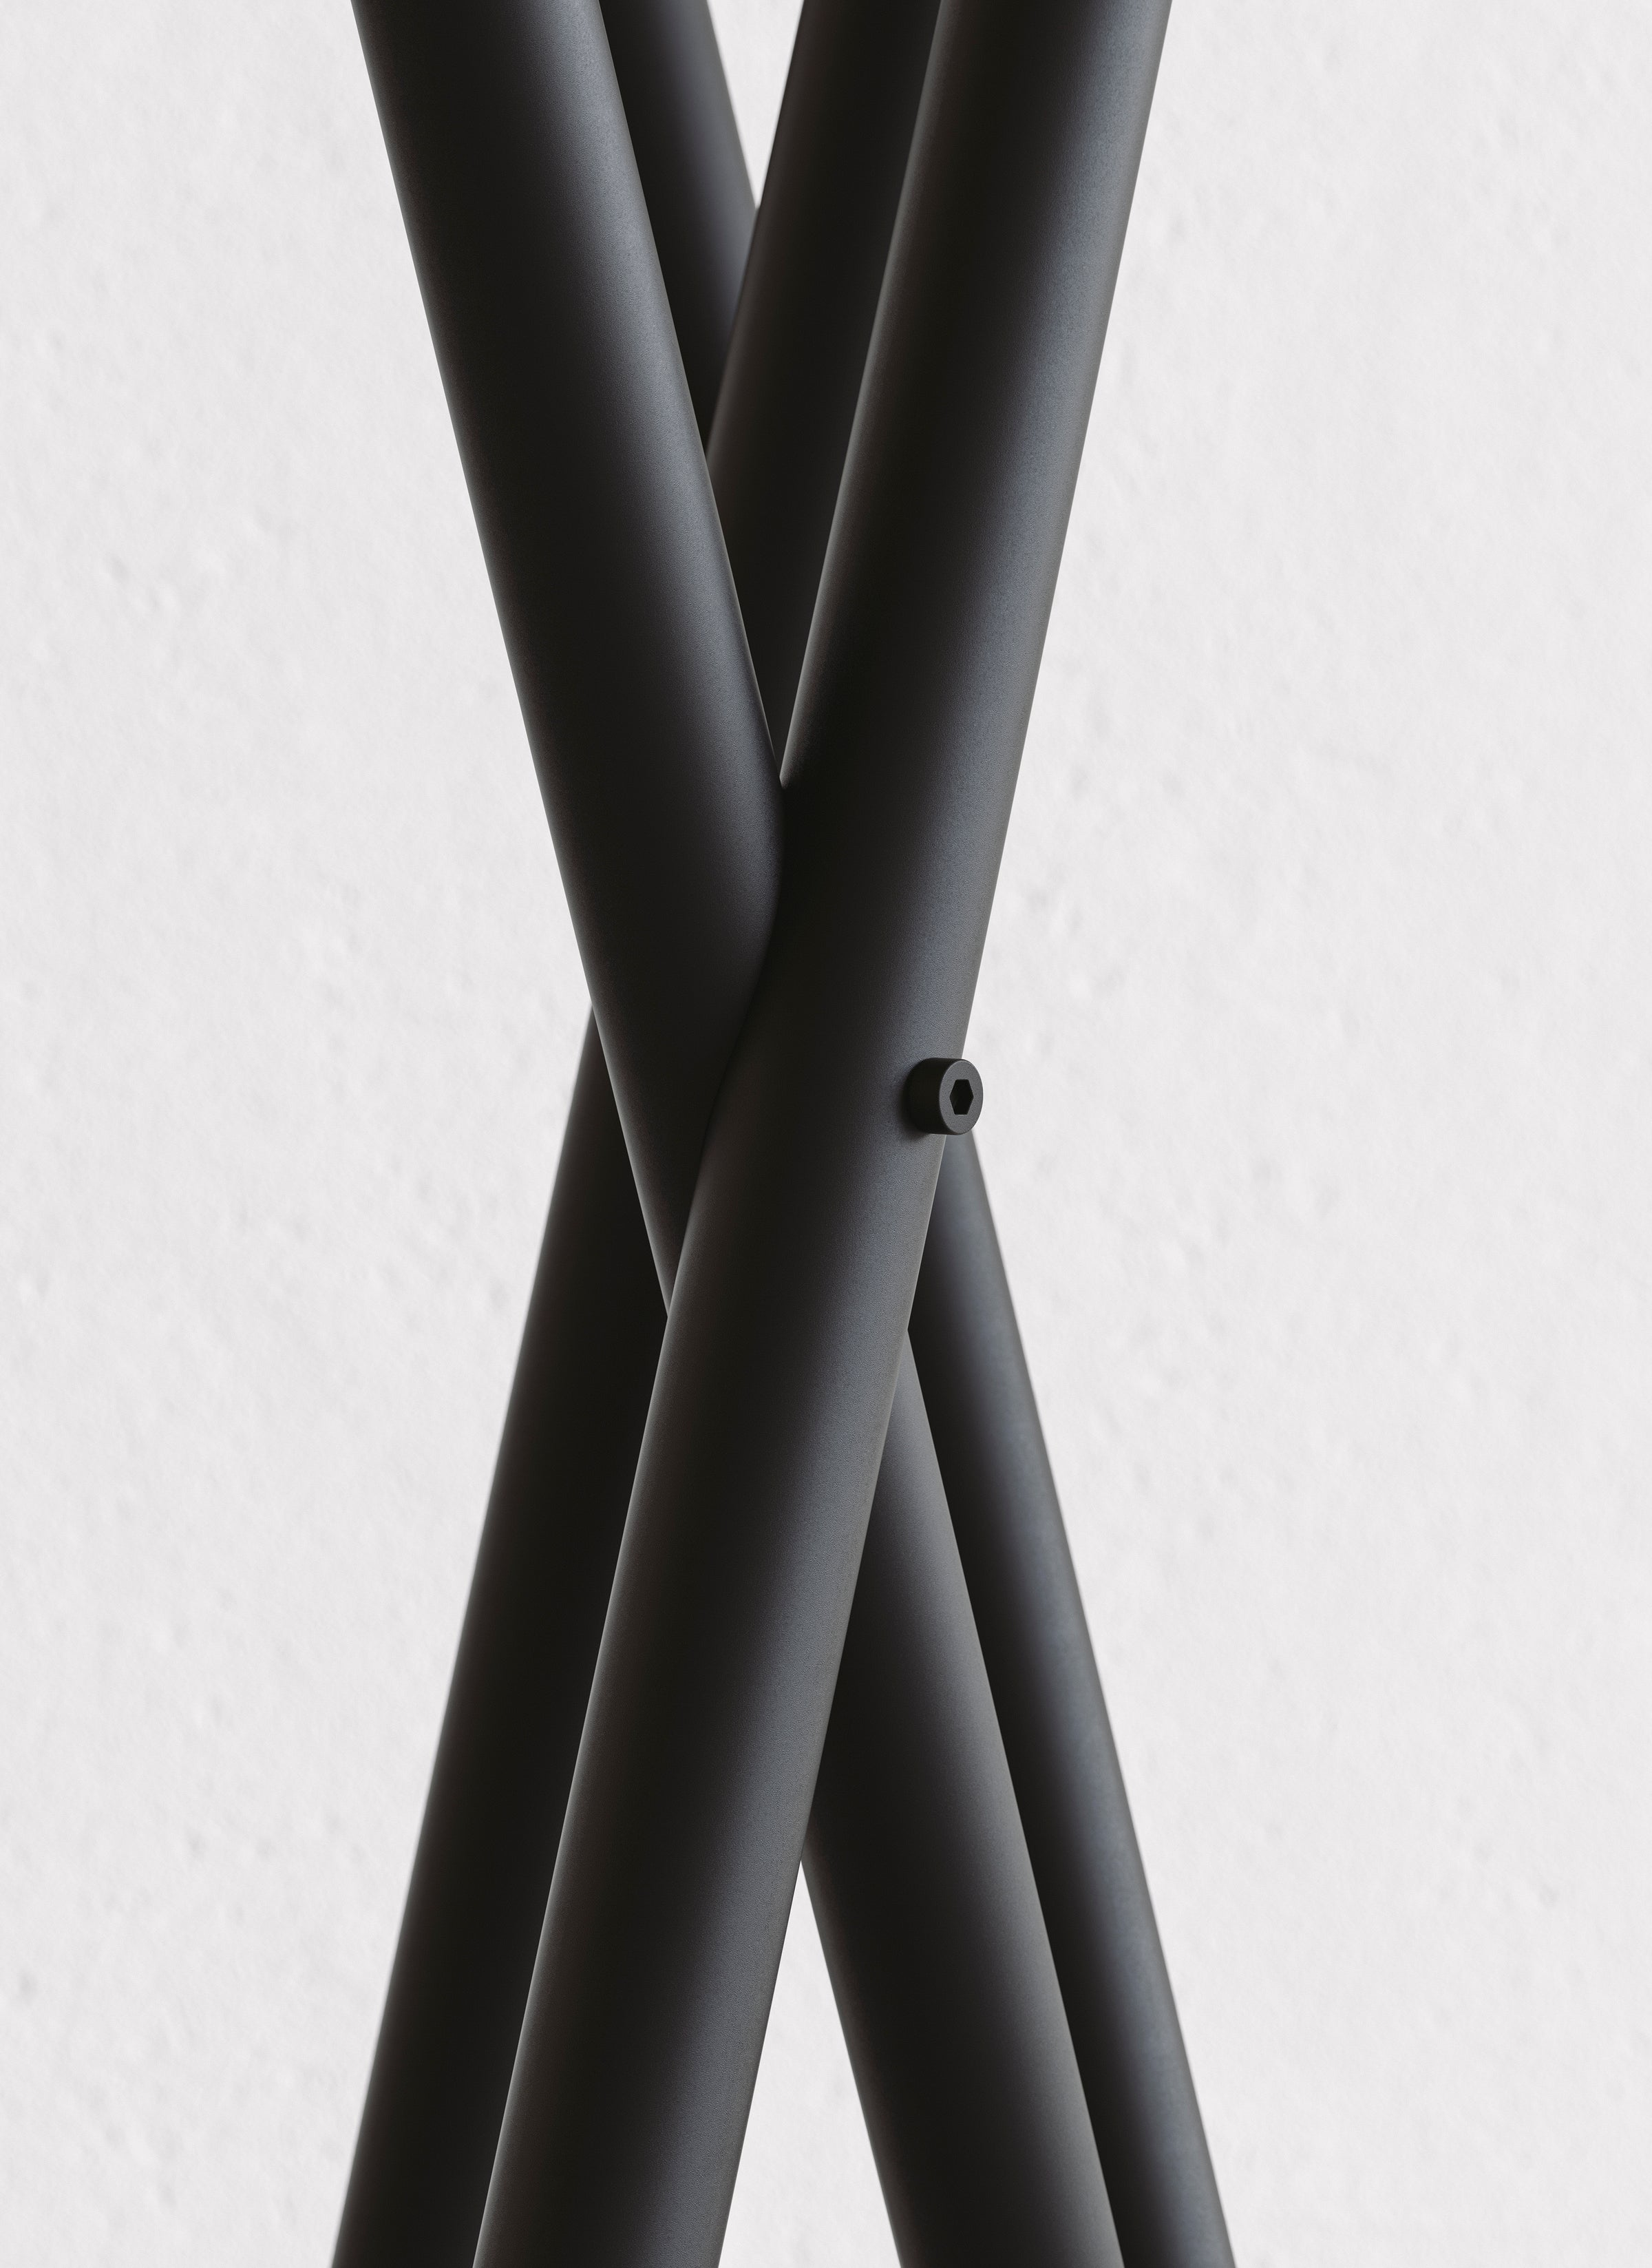 Hash Coatrack — Dark Green